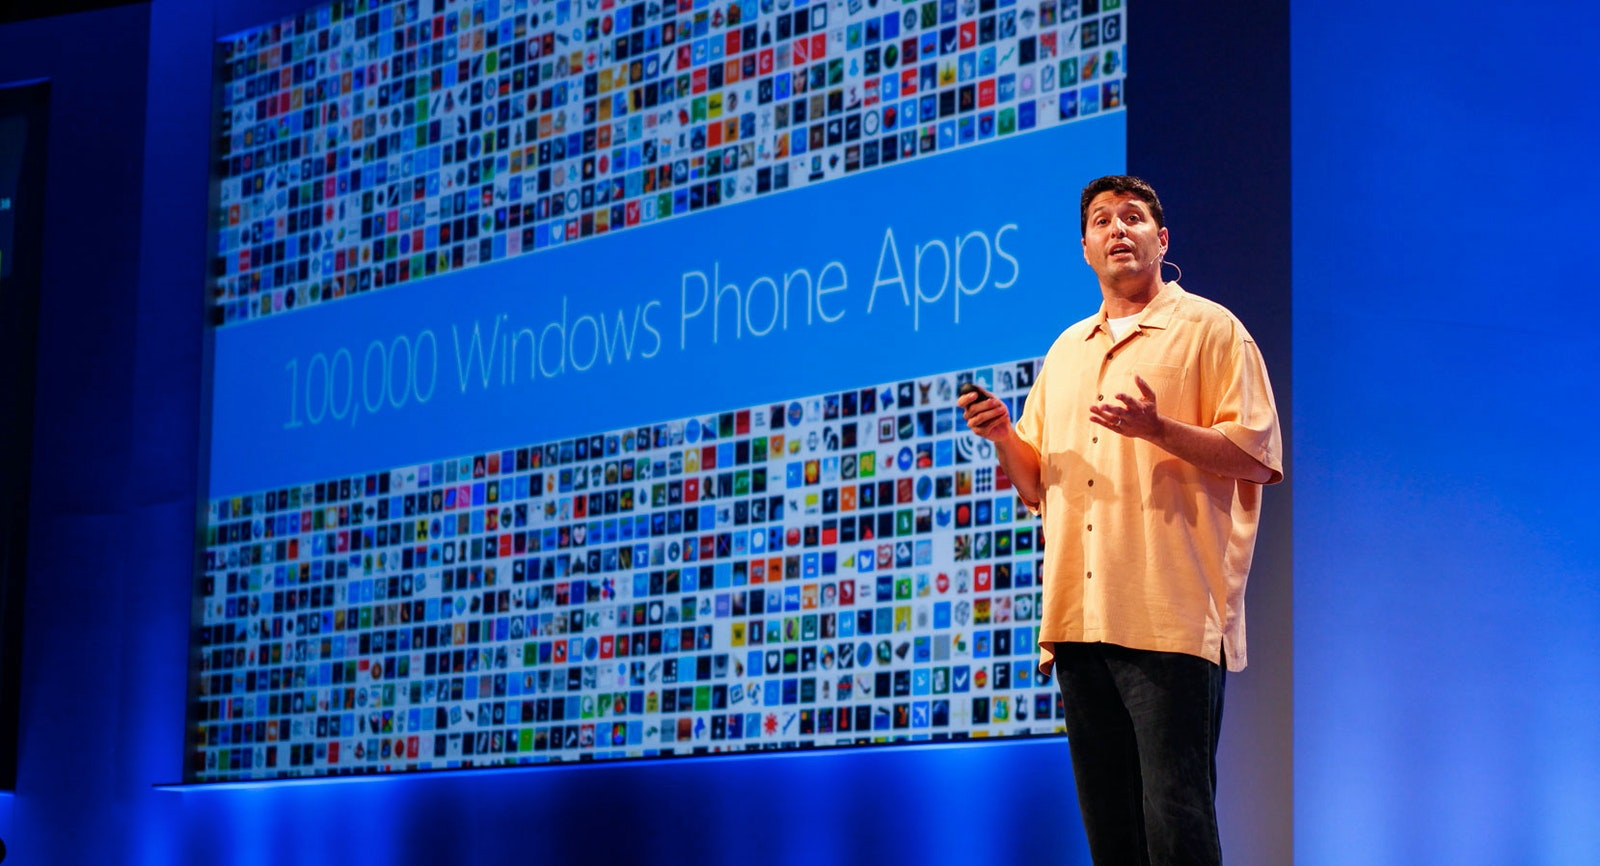 Terry Myerson, who oversees Microsoft's Windows Phone software, in 2012. Credit: Microsoft